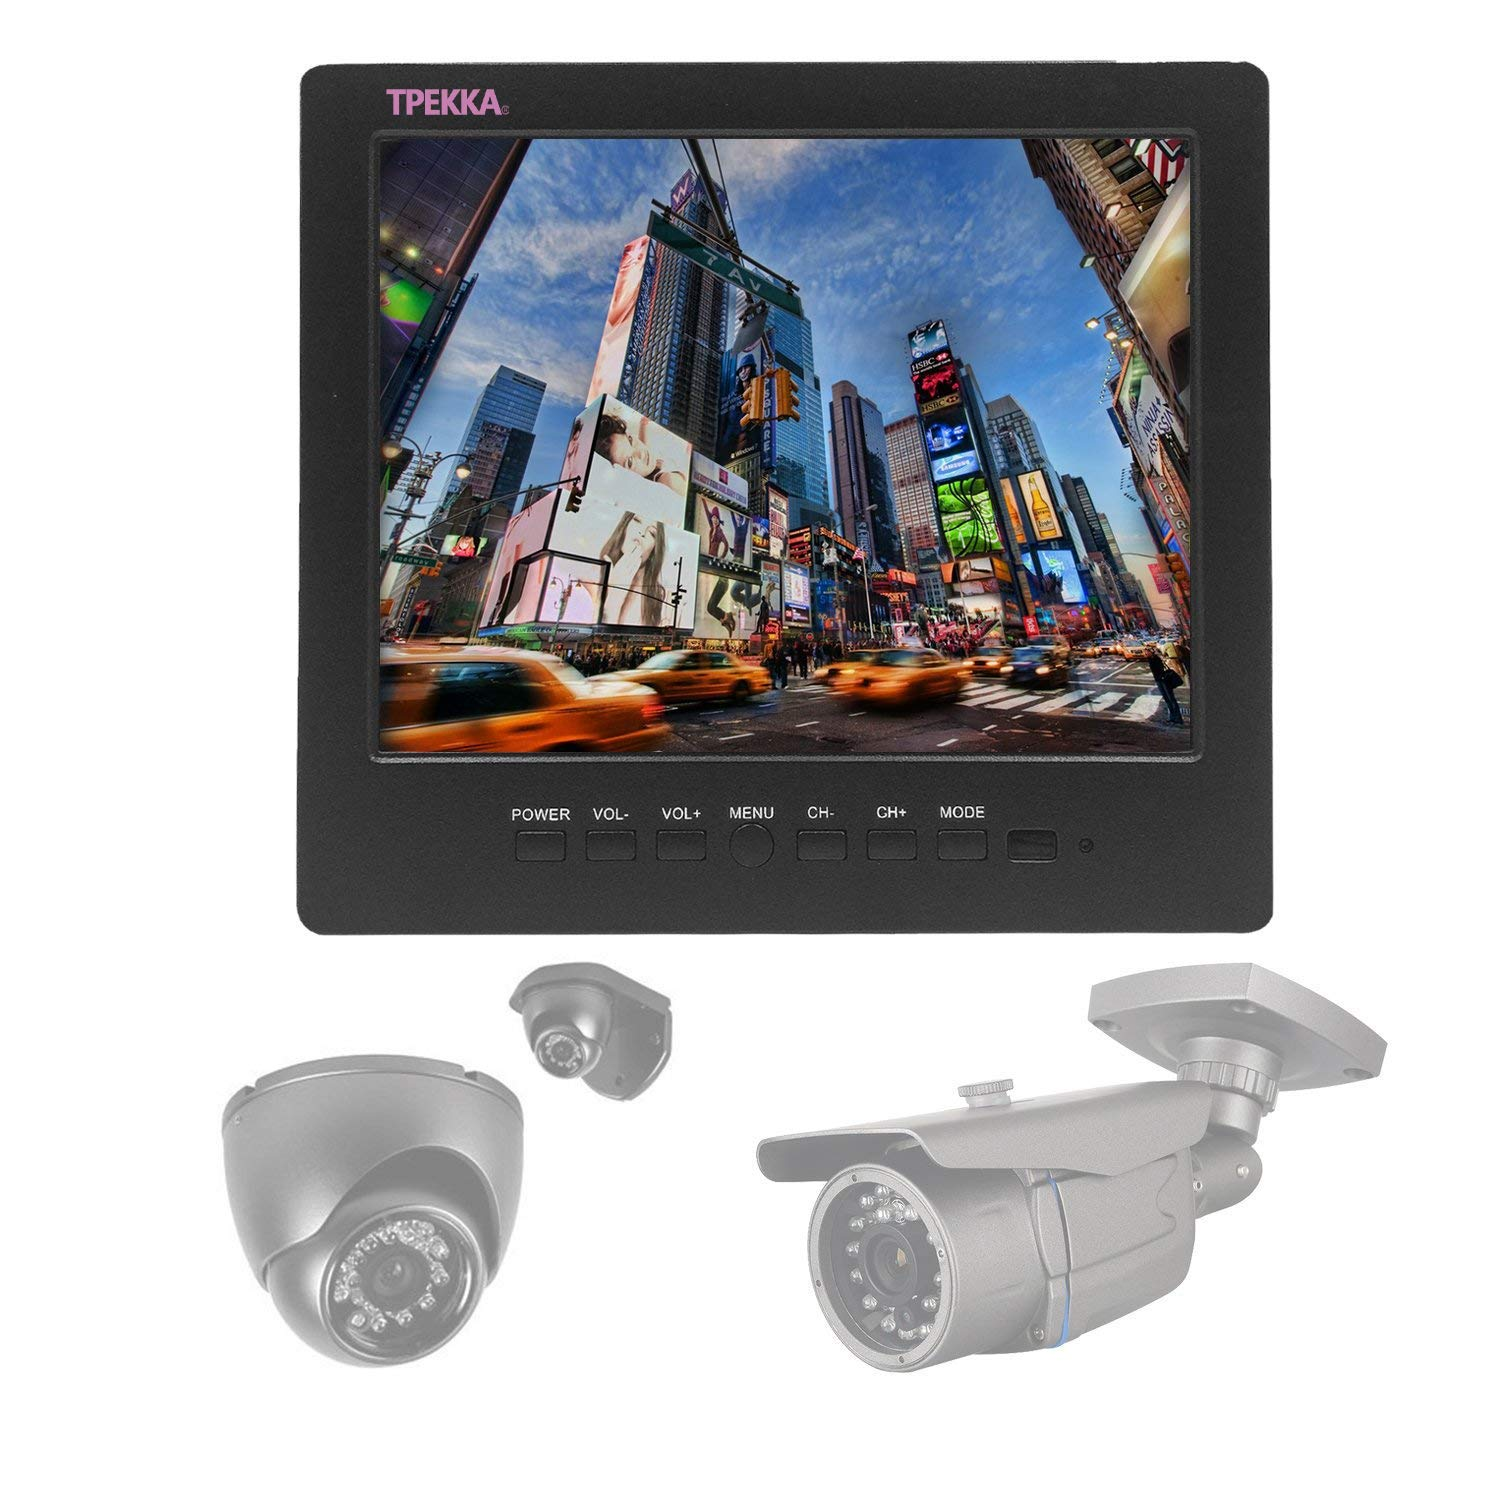 8'' Inch 4:3 Portable Monitor TFT LCD Car Monitor VGA BNC RCA Input TPEKKA 800x600 Monitor Screen for PC Display CCTV Security Cam DV Bcak Up Cam System FPV by TPEKKA (Image #4)